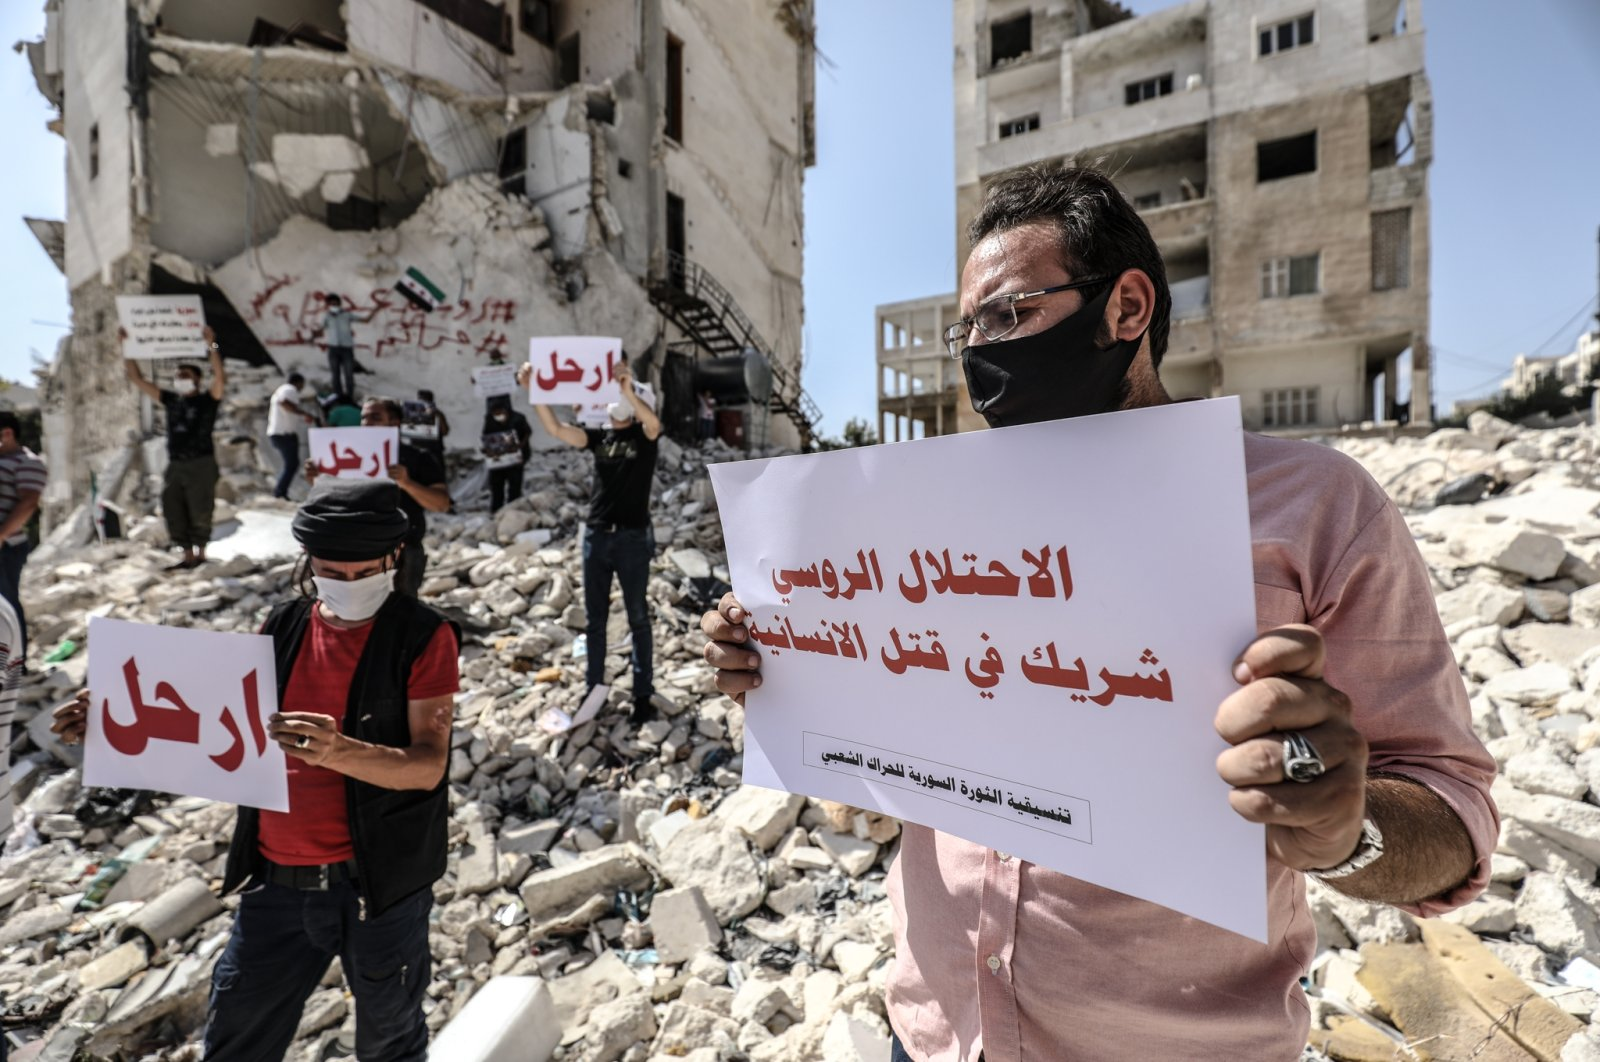 Dozens of Syrians demonstrate in northwestern Syria's Idlib to mark five years of Russian intervention supporting Bashar Assad's regime in the civil war, Sept. 30, 2020. (AA Photo)